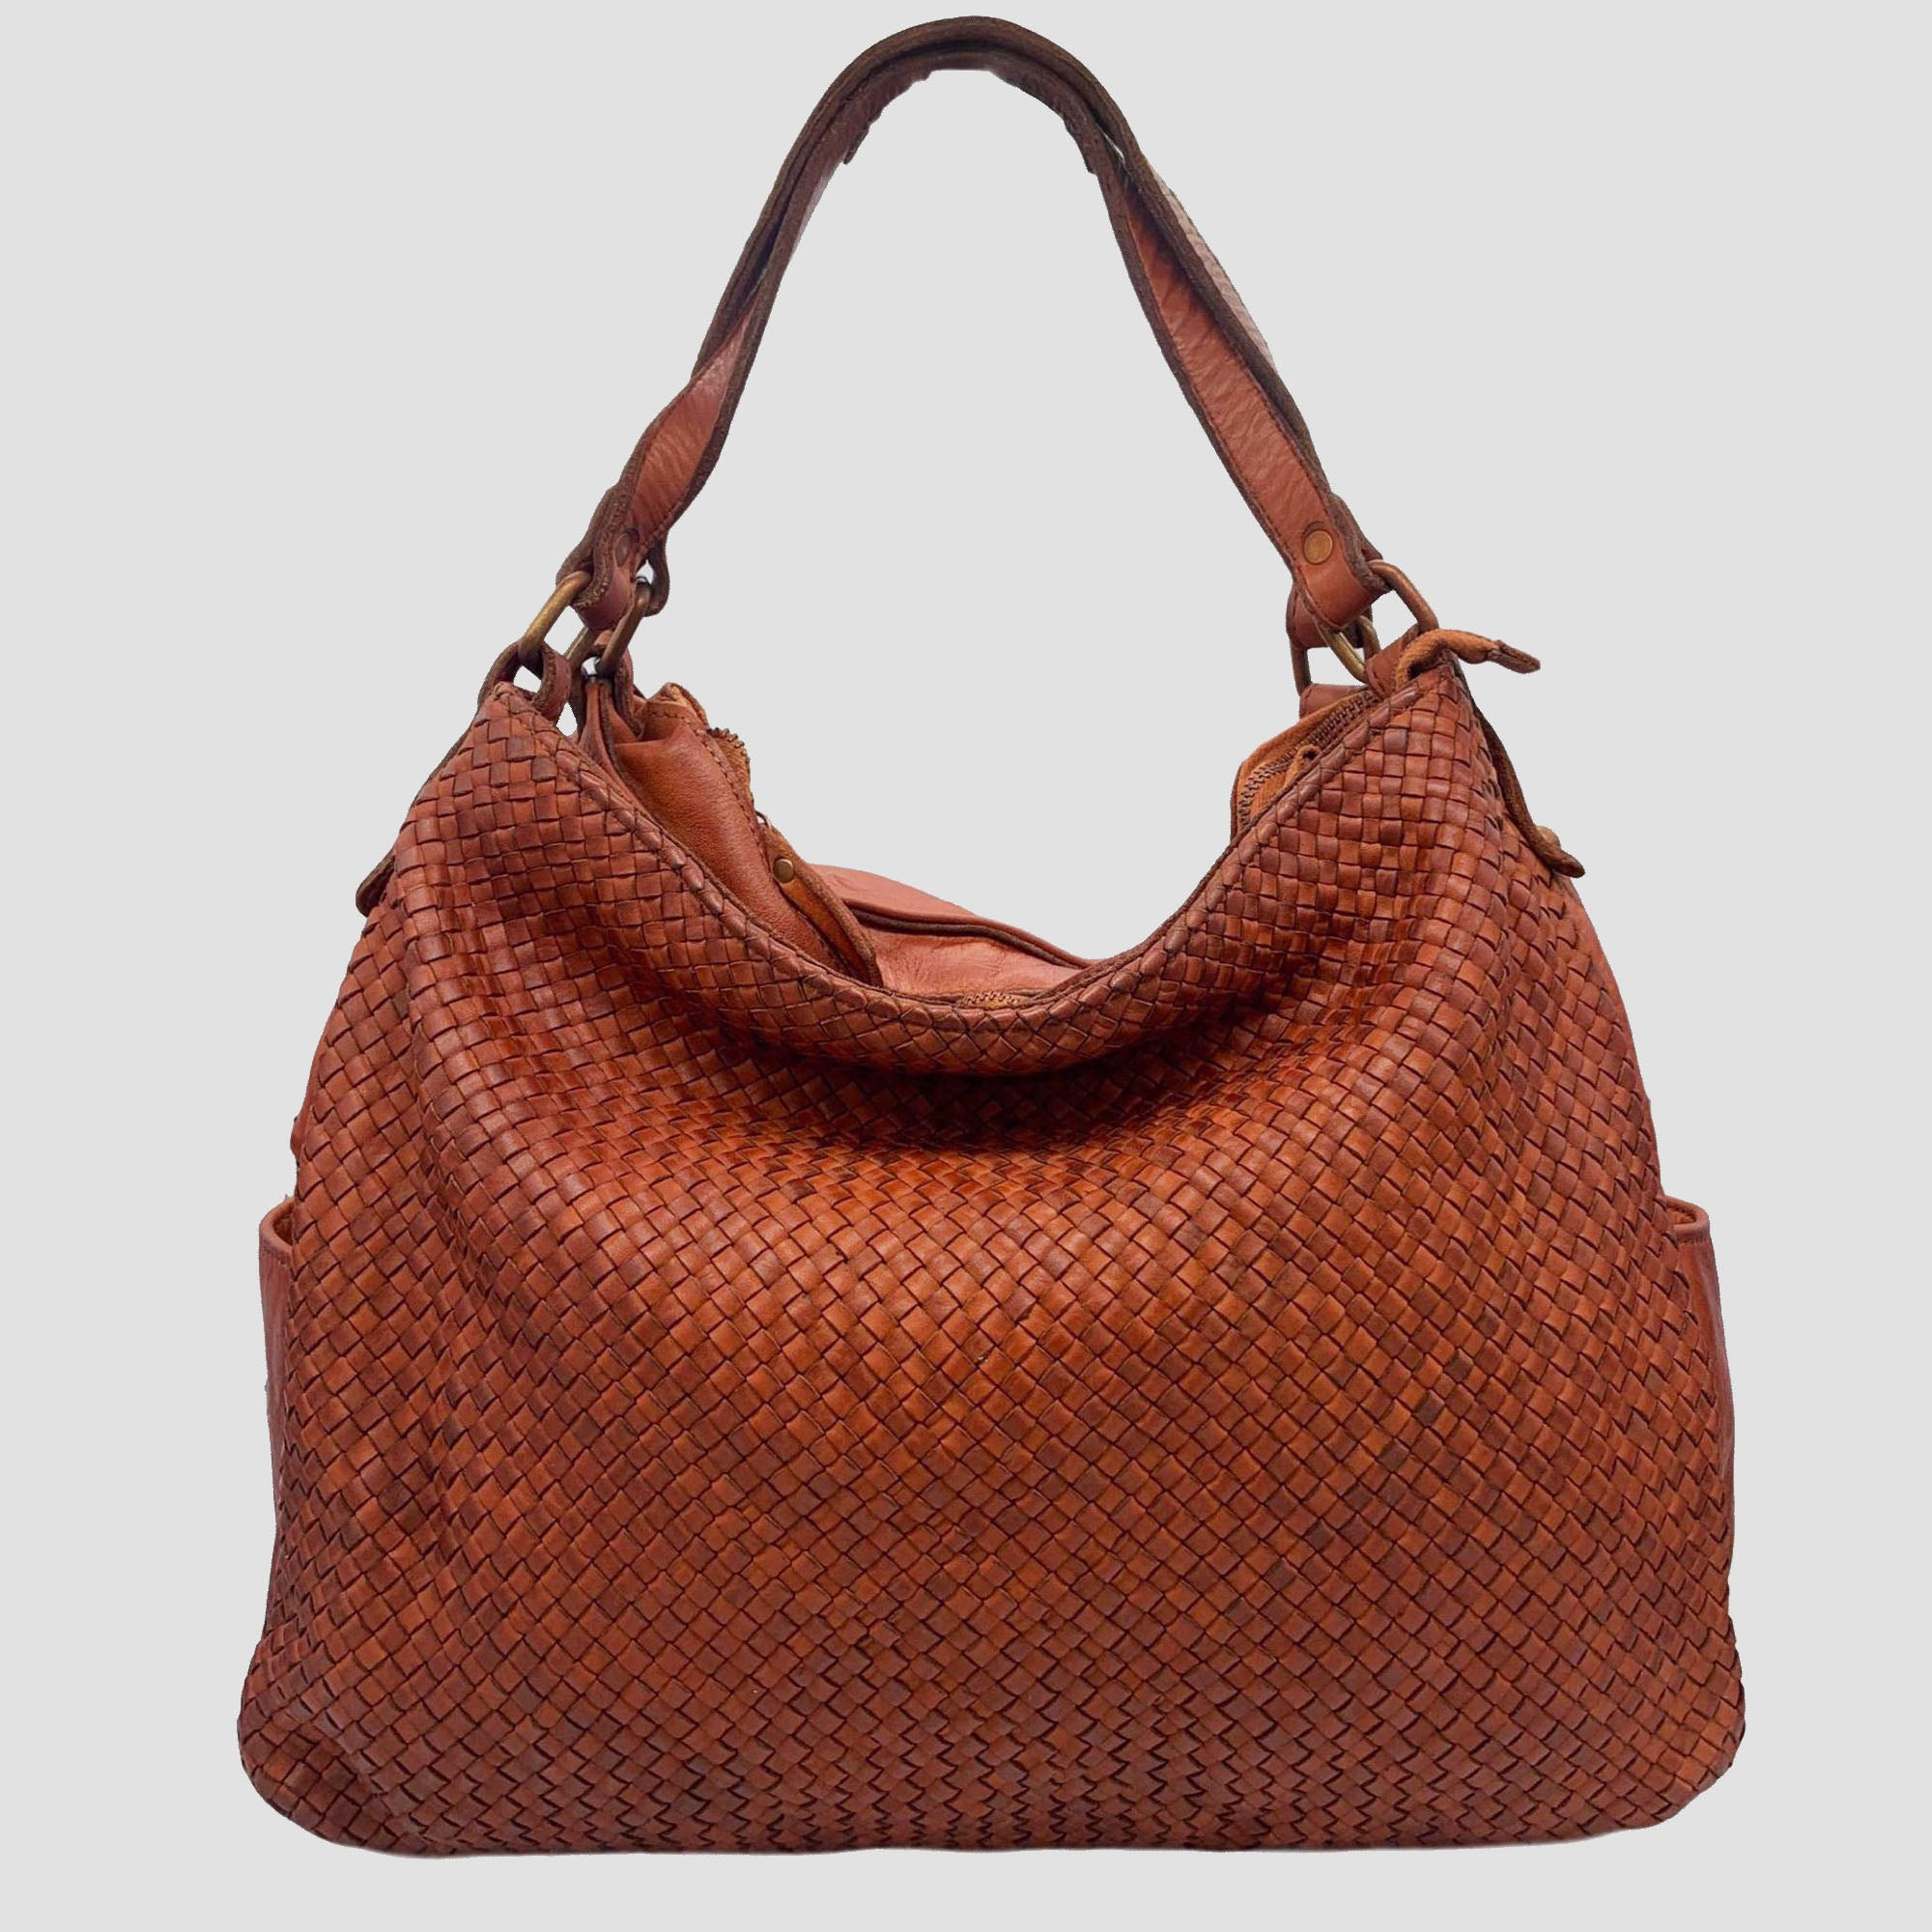 Double Compartment Woven Leather Hobo/Crossbody Bag